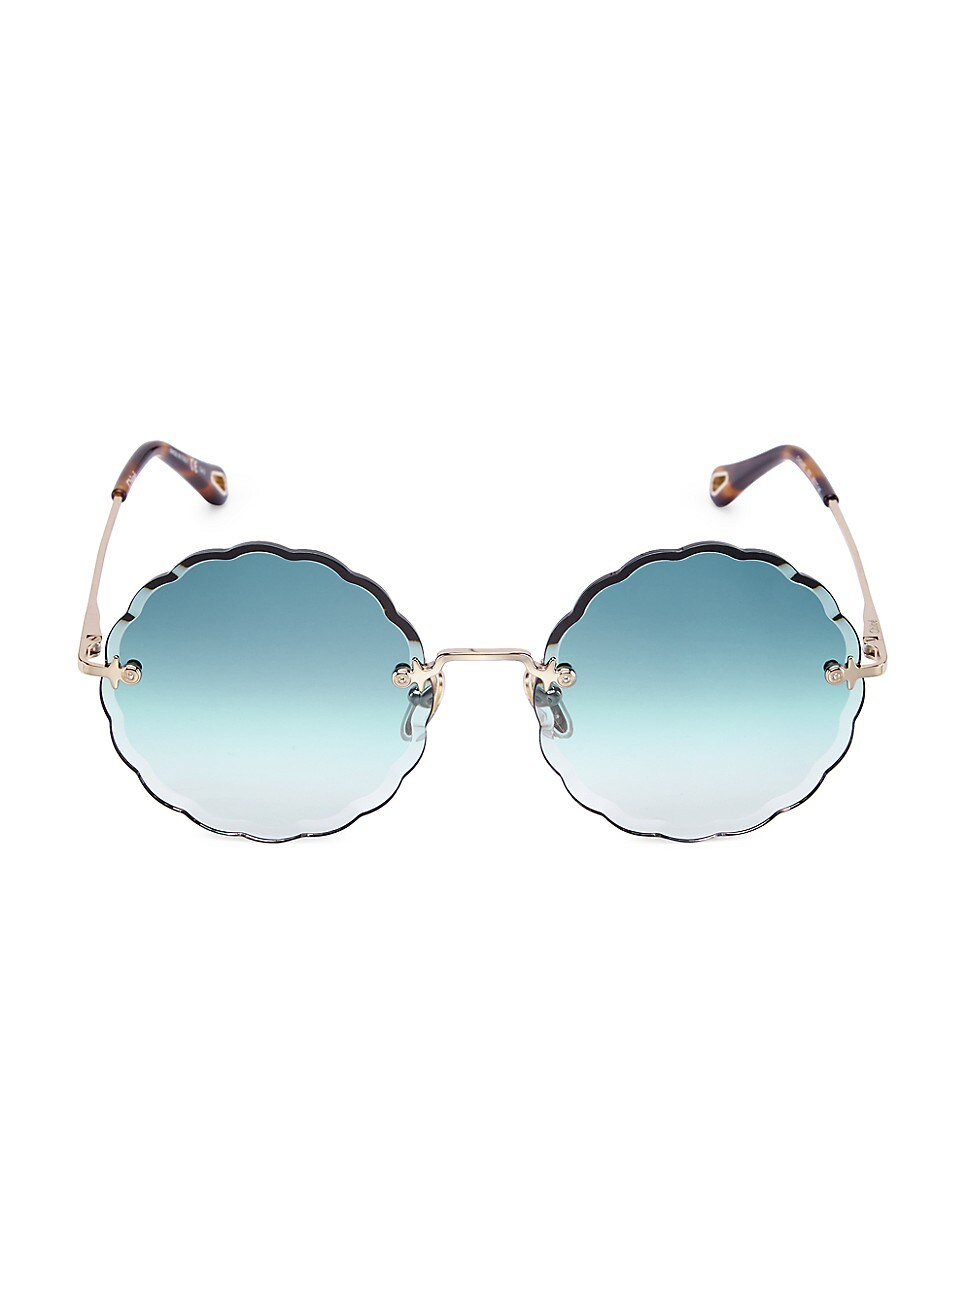 Chloé WOMEN'S 60MM ROUND SCALLOPED SUNGLASSES